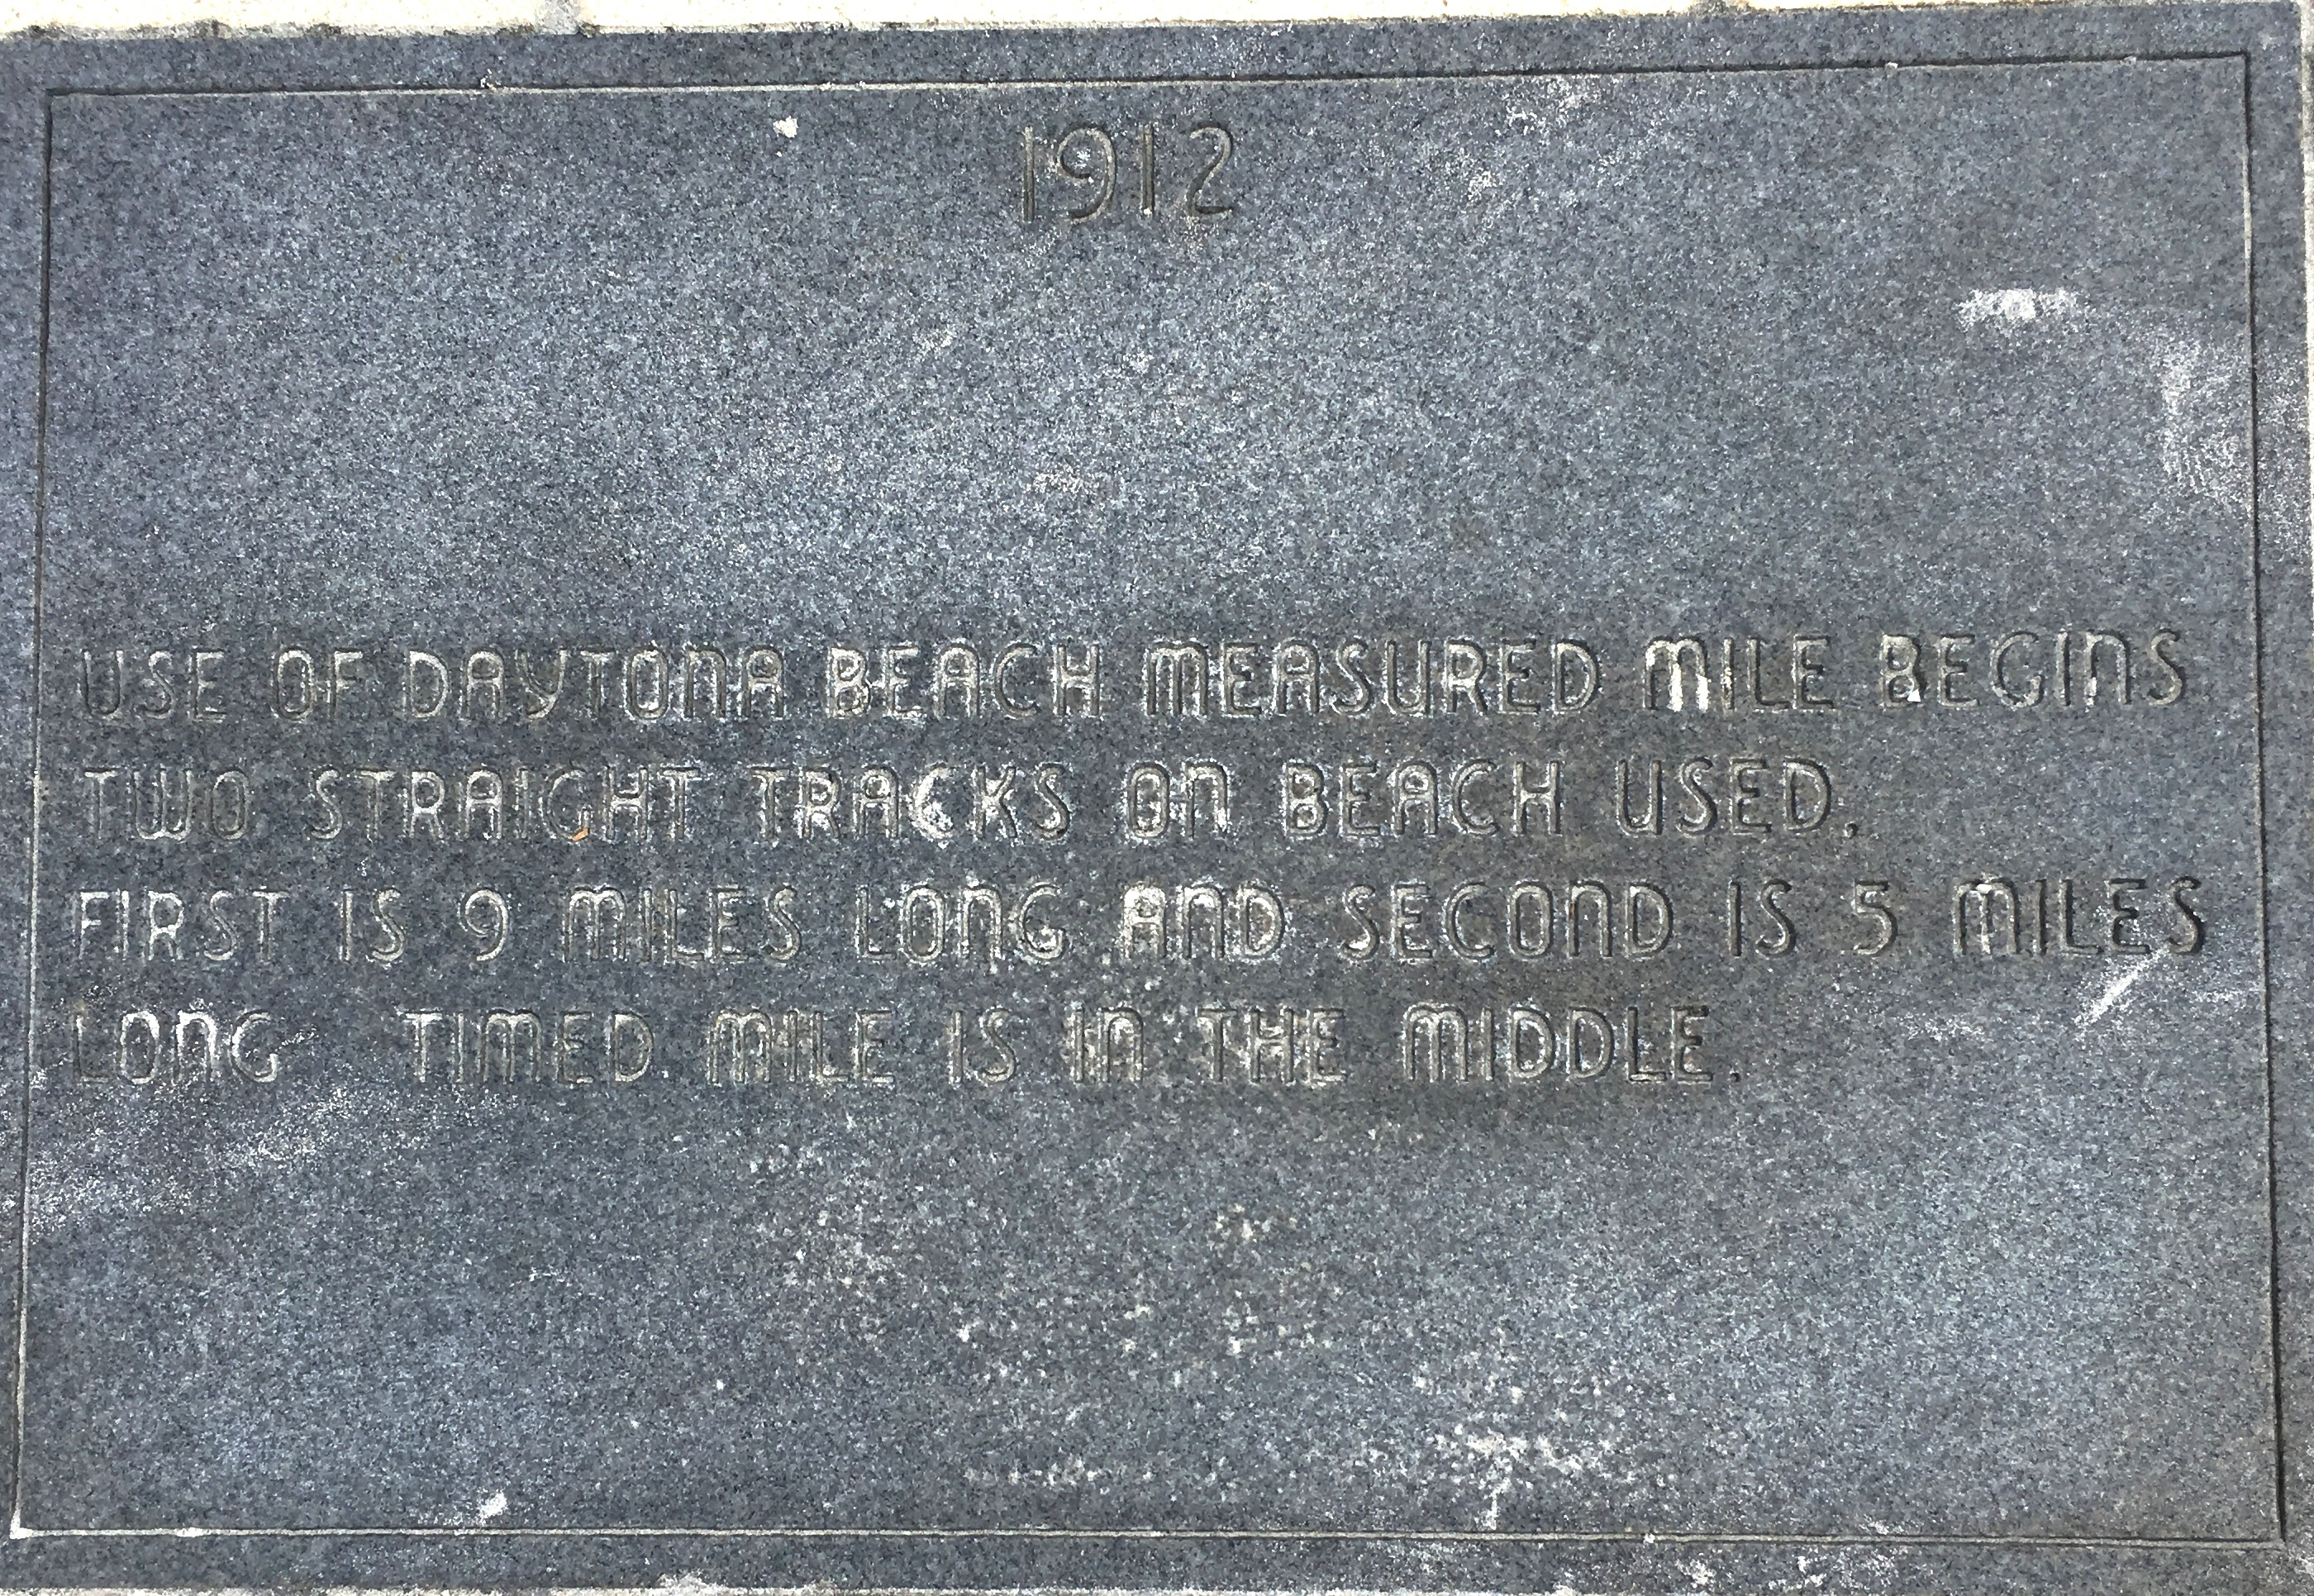 Racing on the Beach 1912 Marker